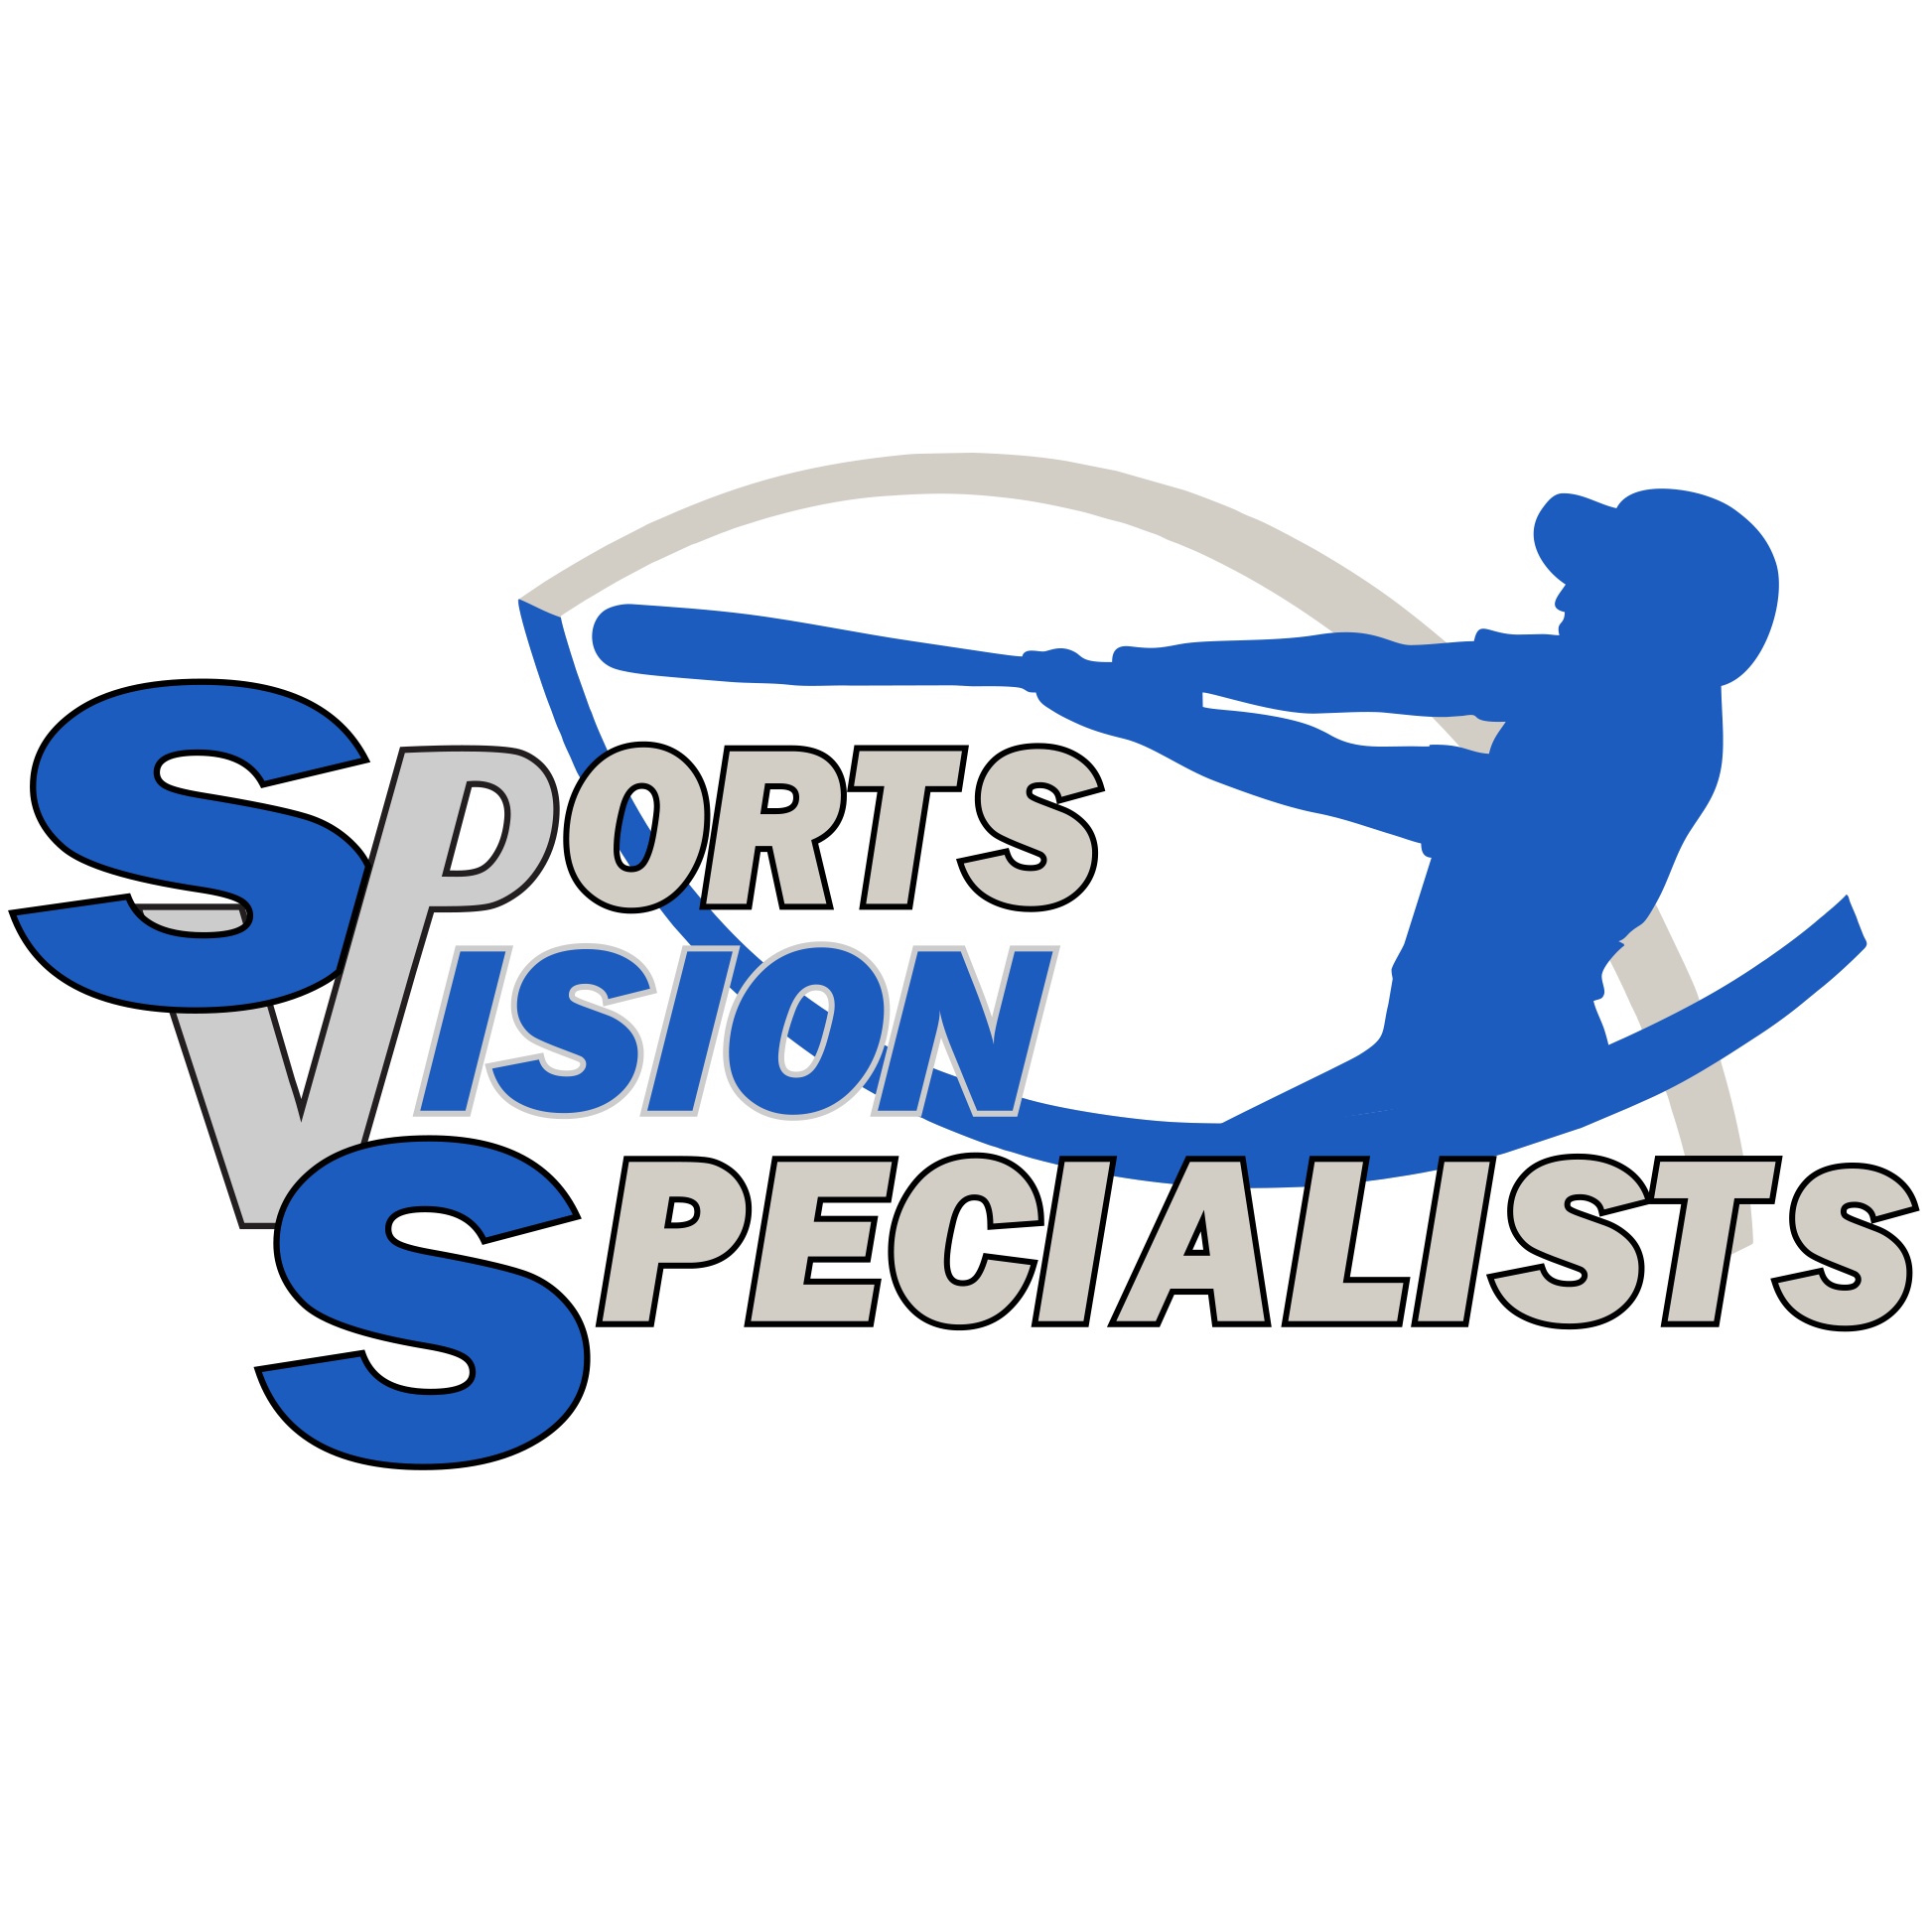 Sports Vision Specialists - Terre Haute, IN 47802 - (812)232-1000 | ShowMeLocal.com